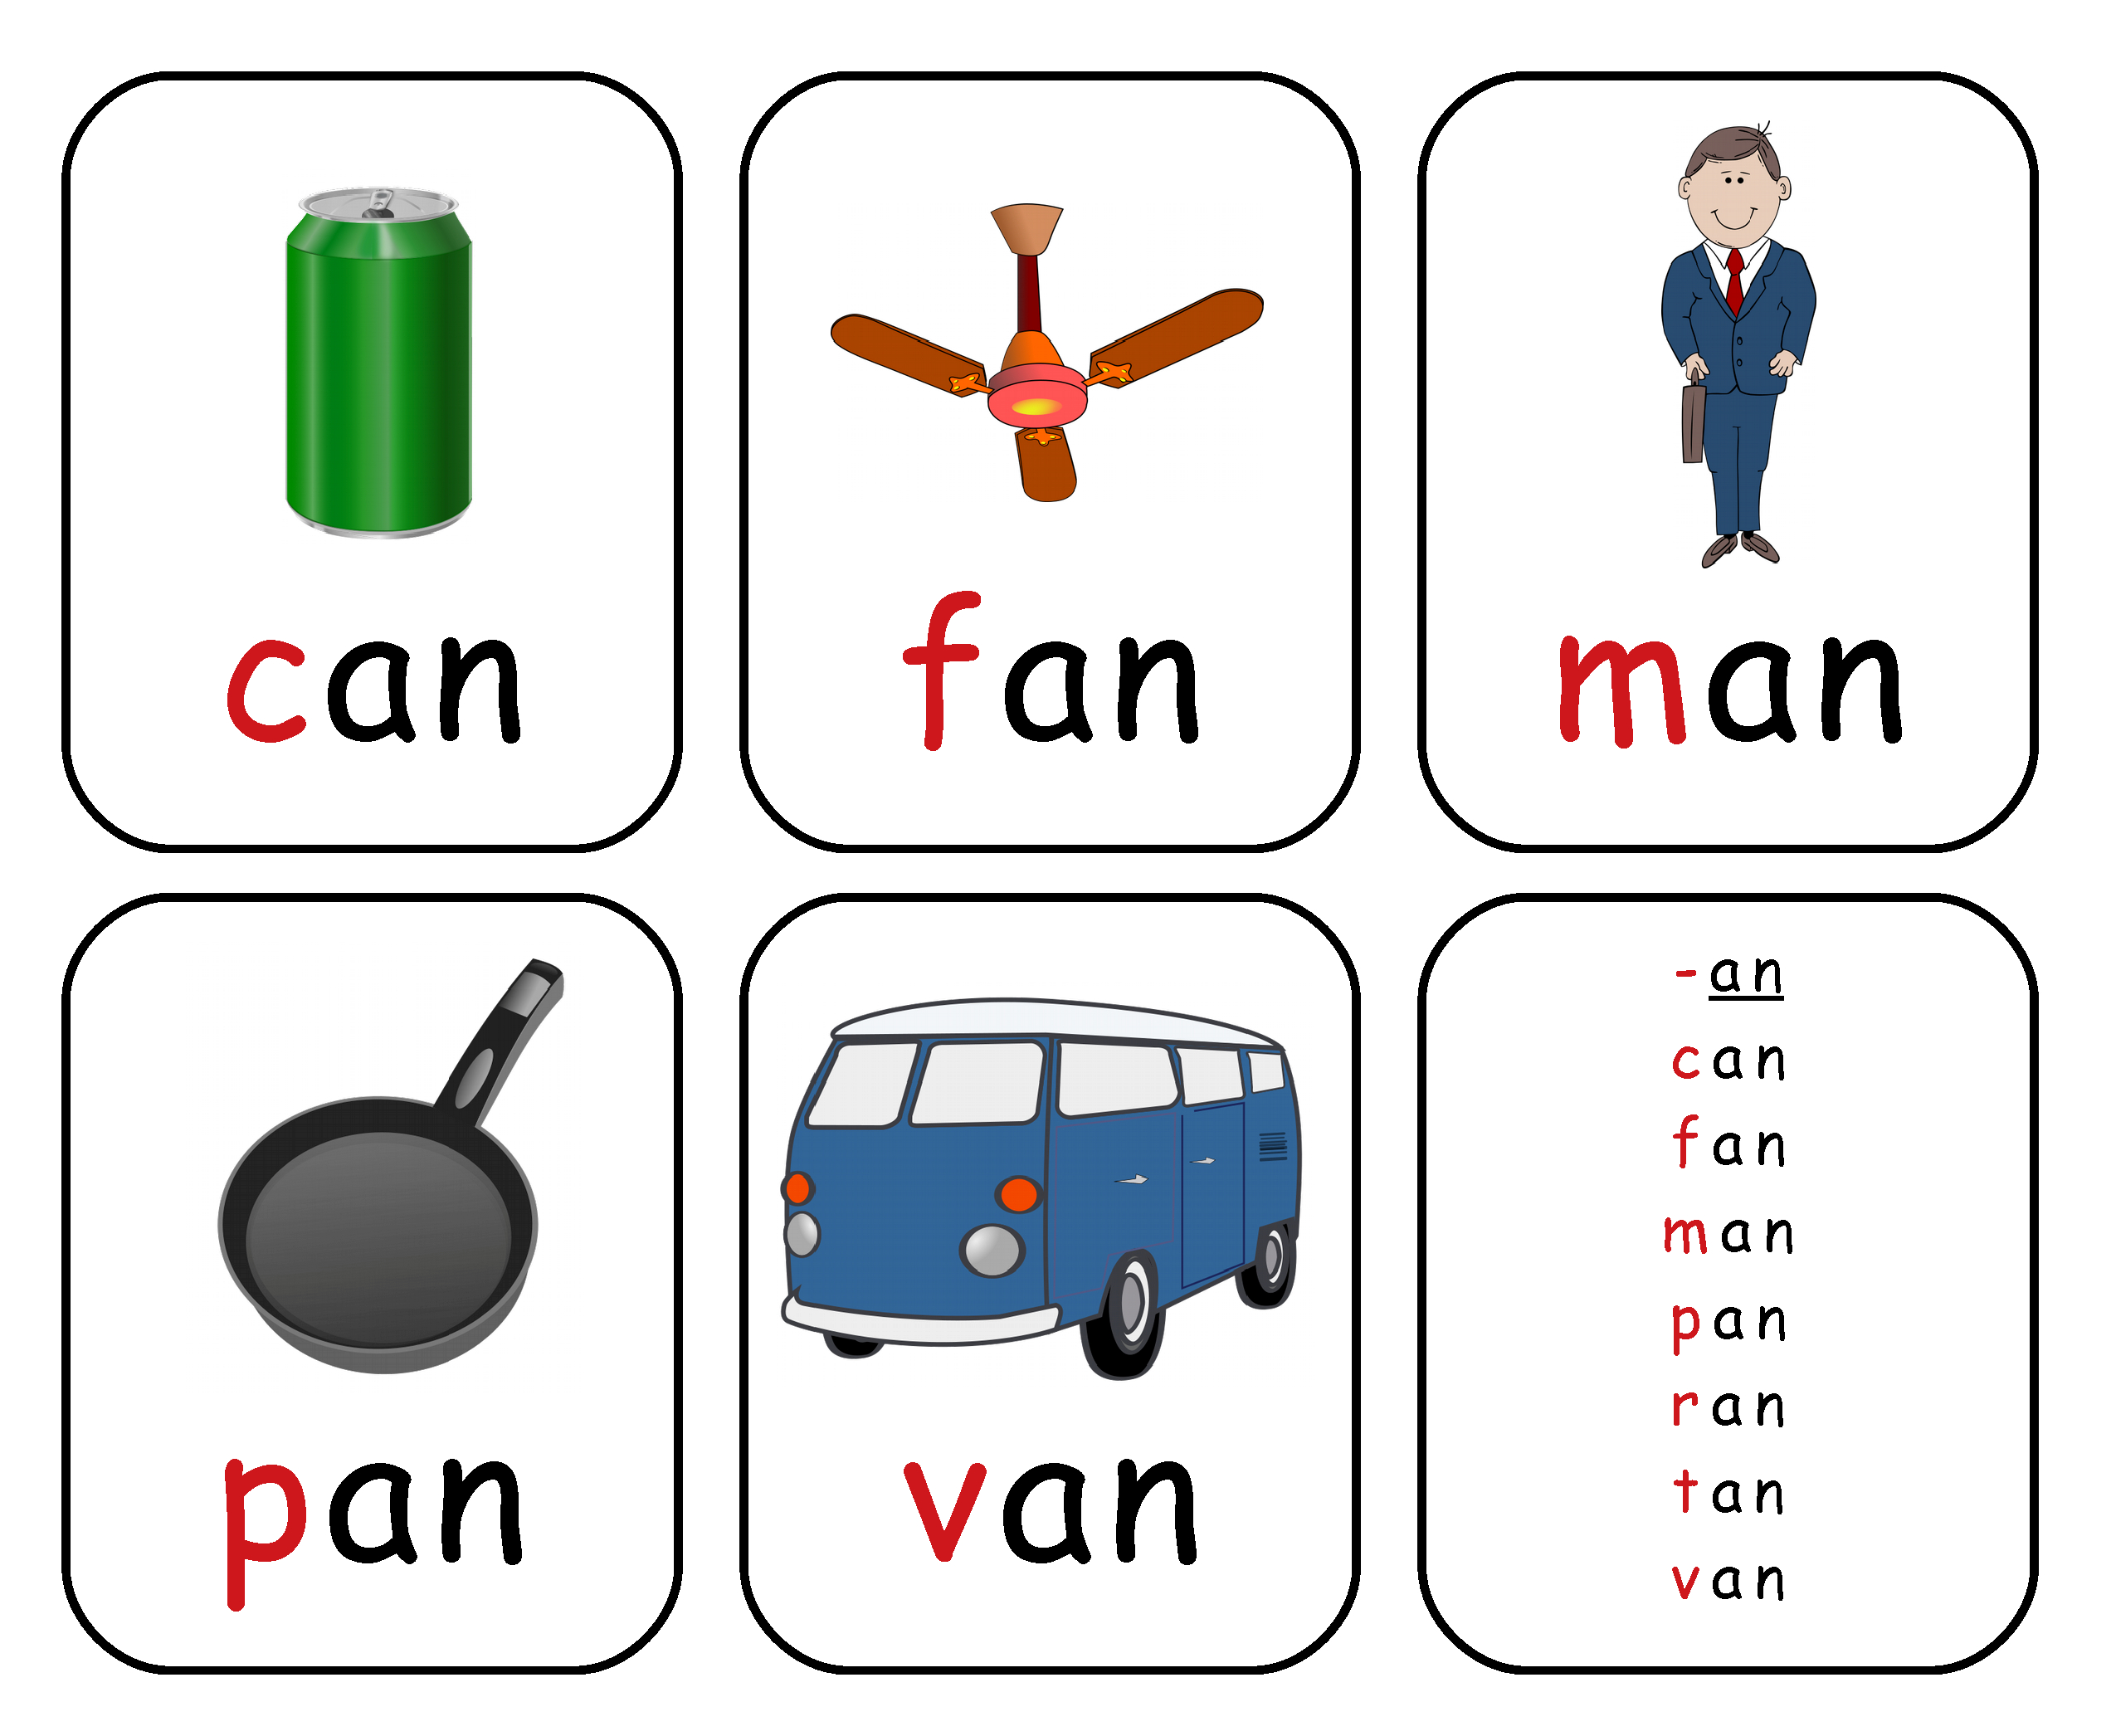 Free Printable Rhyming Words Flash Cards '-An' | Free Printable For - Free Printable Rhyming Words Flash Cards